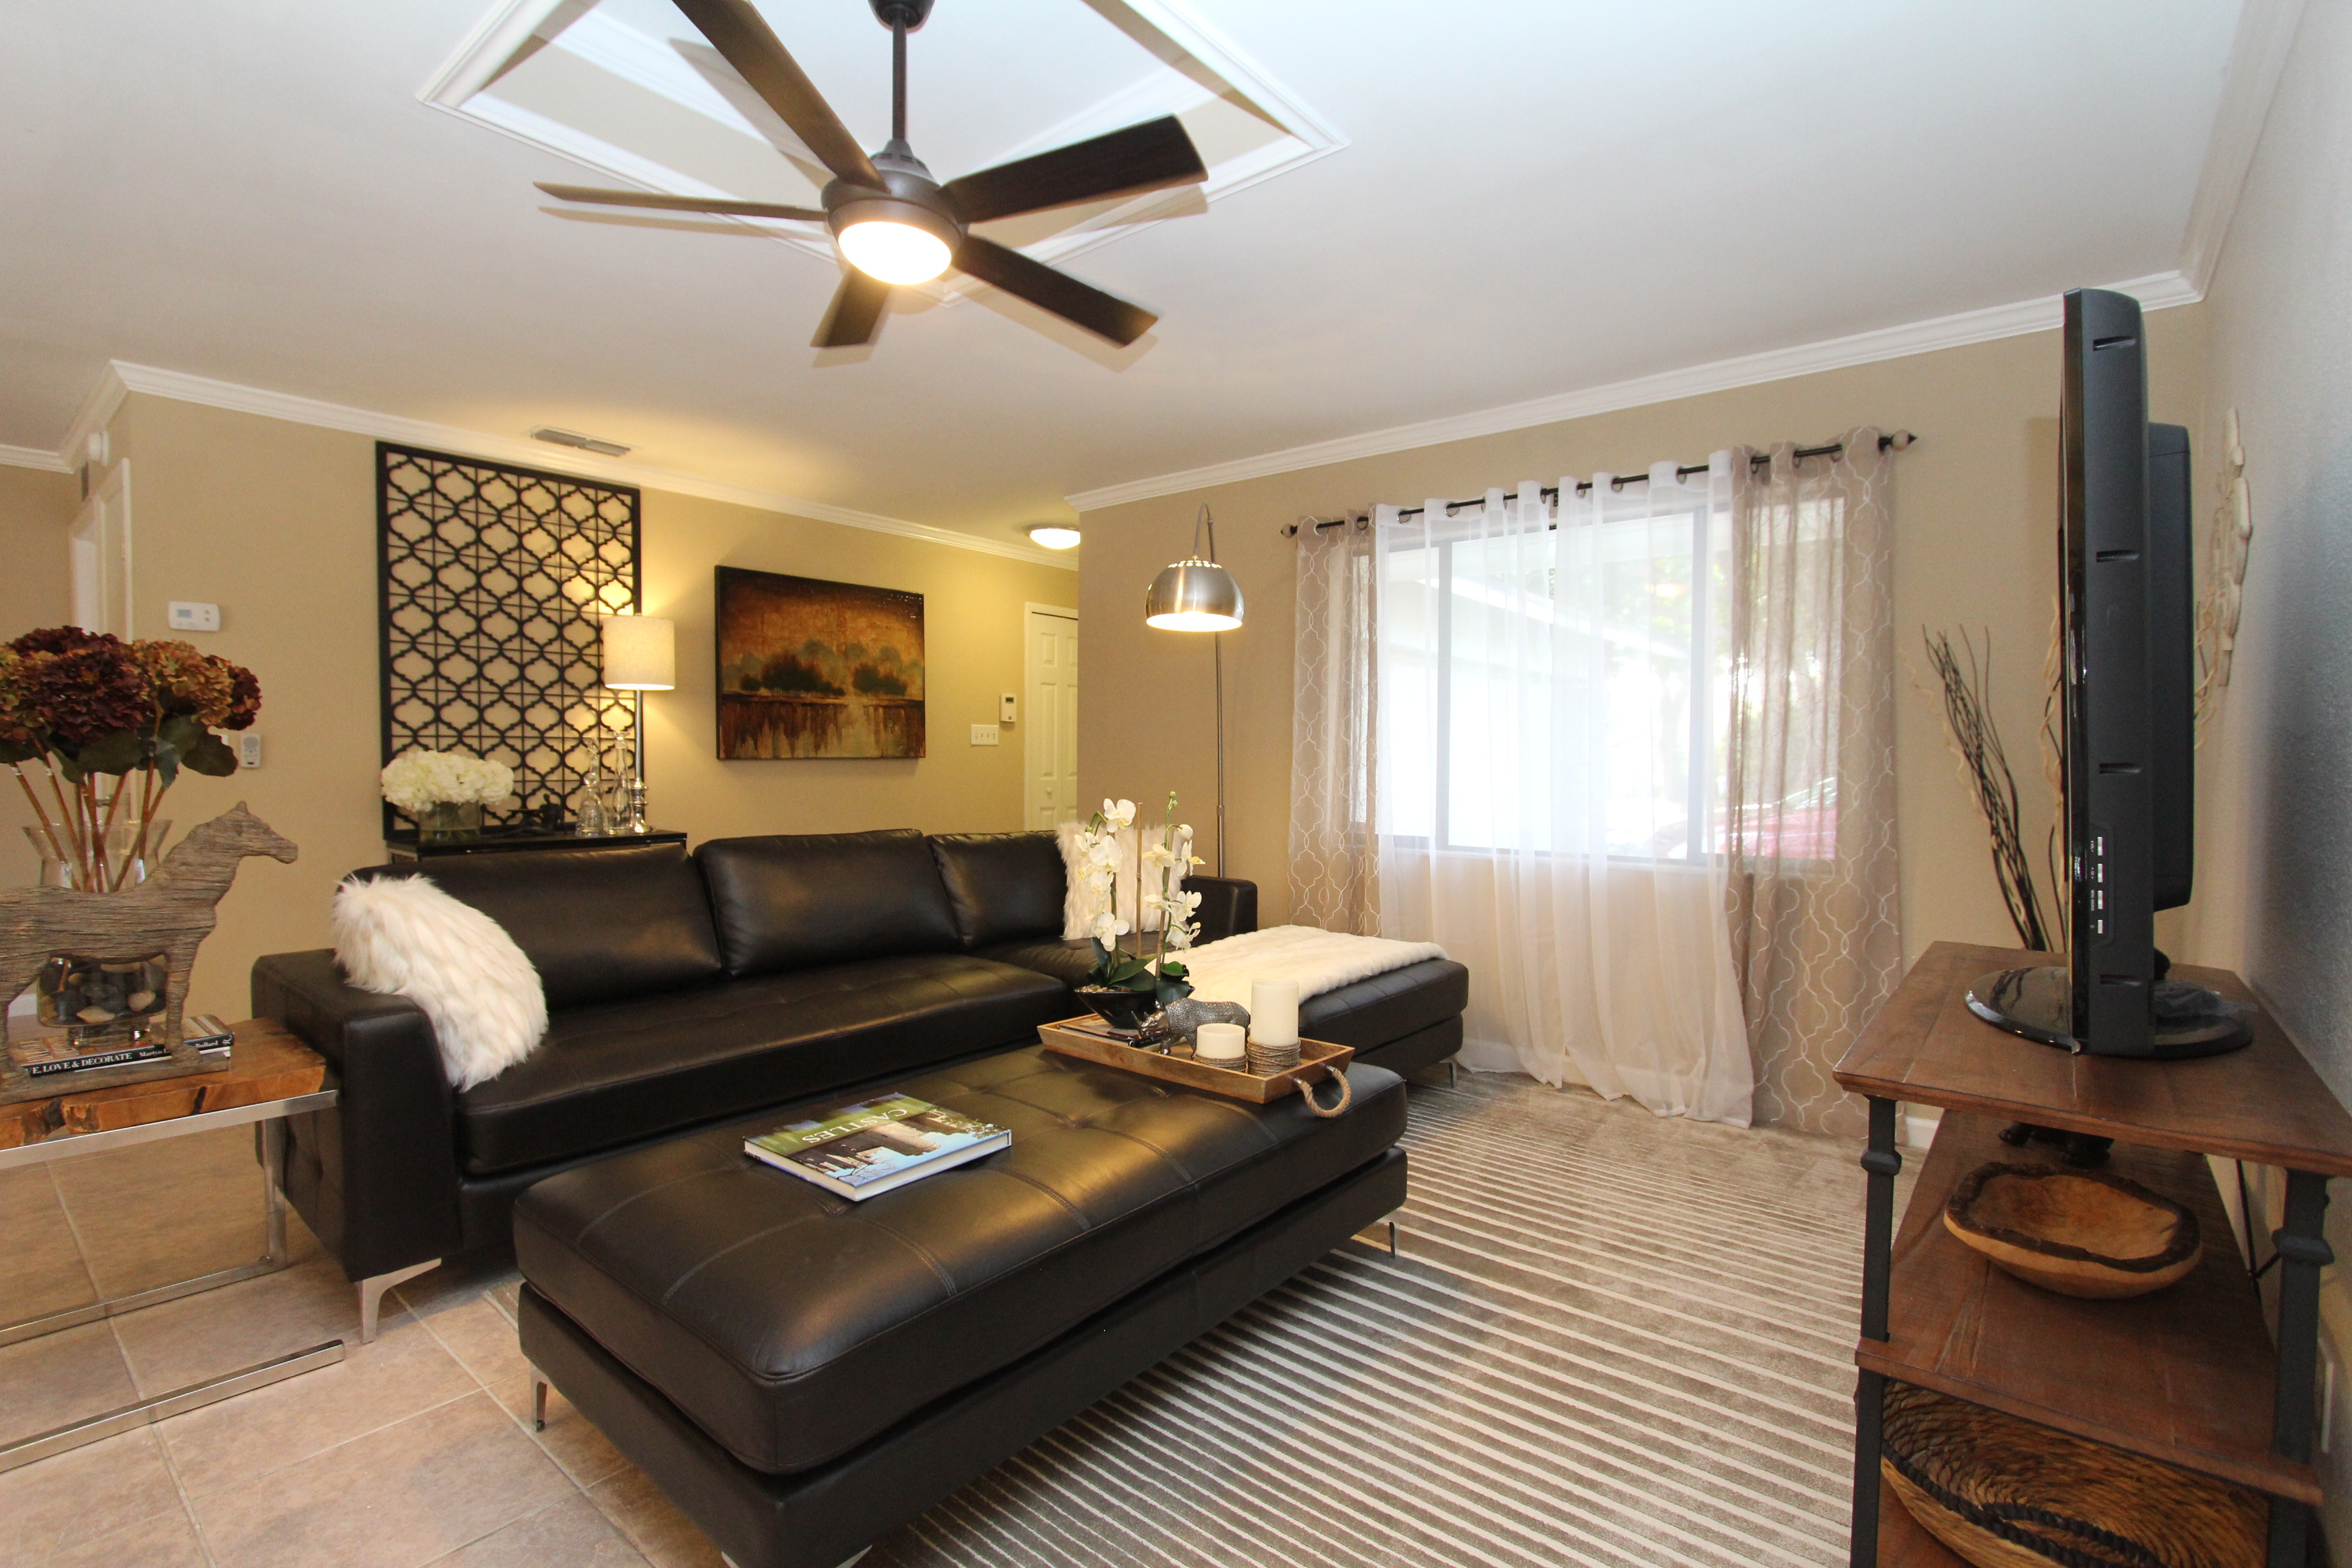 Comfy Floor Seating Orlando Home Staging Services